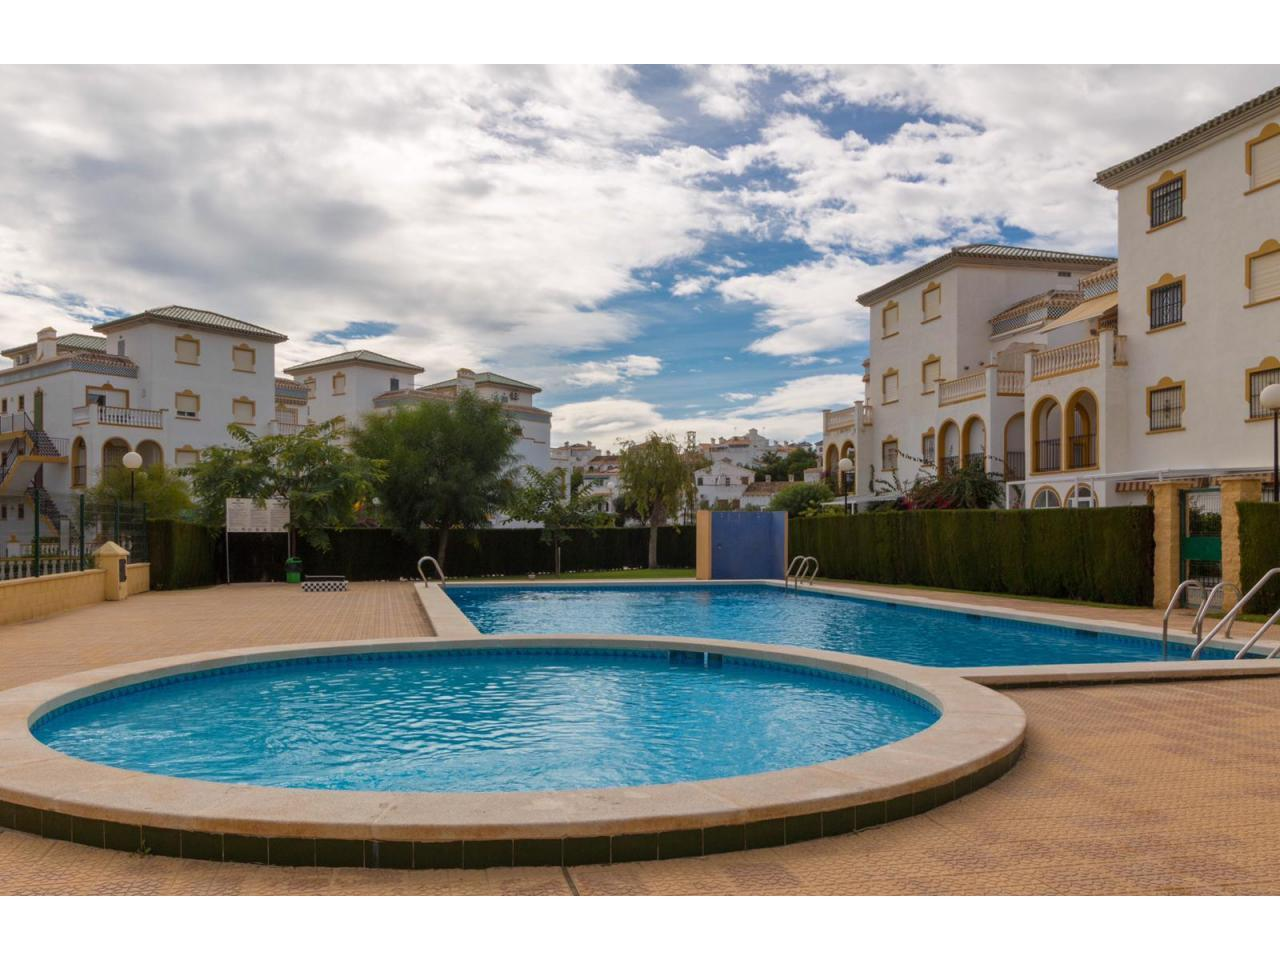 Apartment in Torrevieja, Spain for rent - 10